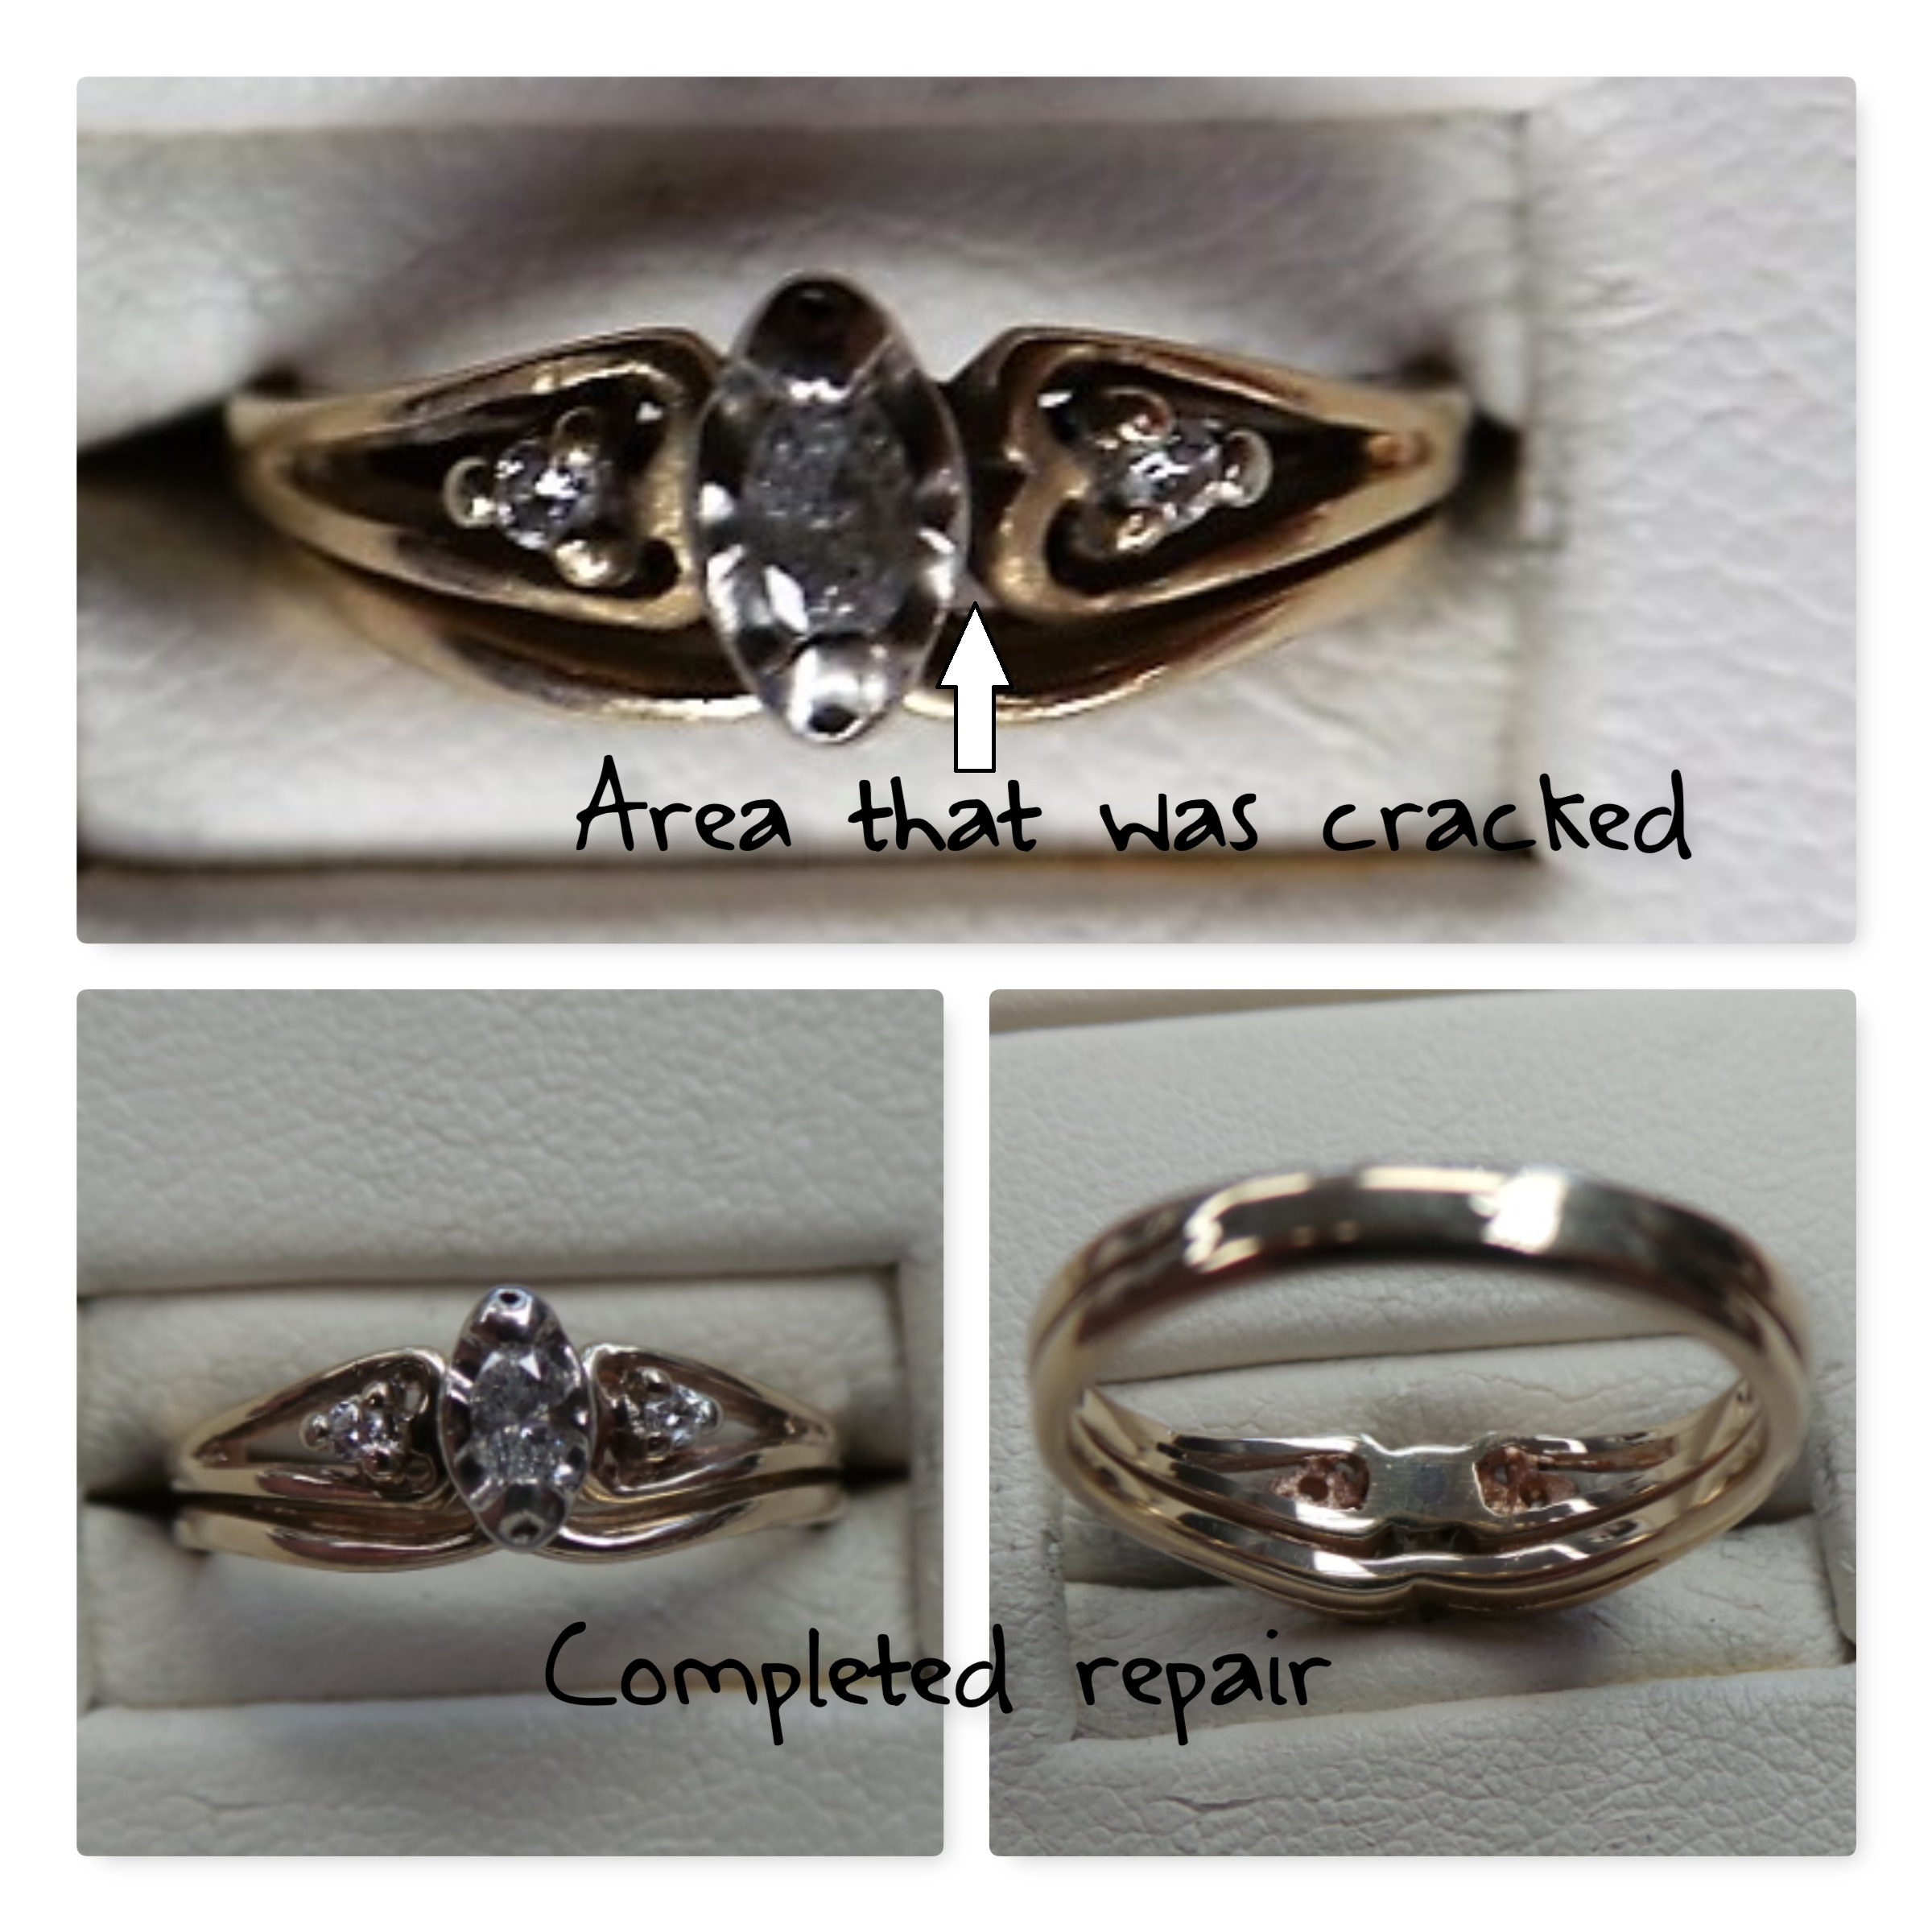 Another jeweler told this client that her ring WAS NOT WORTH REPAIRING, that she should remove the stones & put them into a brand new ring. - This could not be further from the truth!! This ring was a great candidate for a seamless repair!